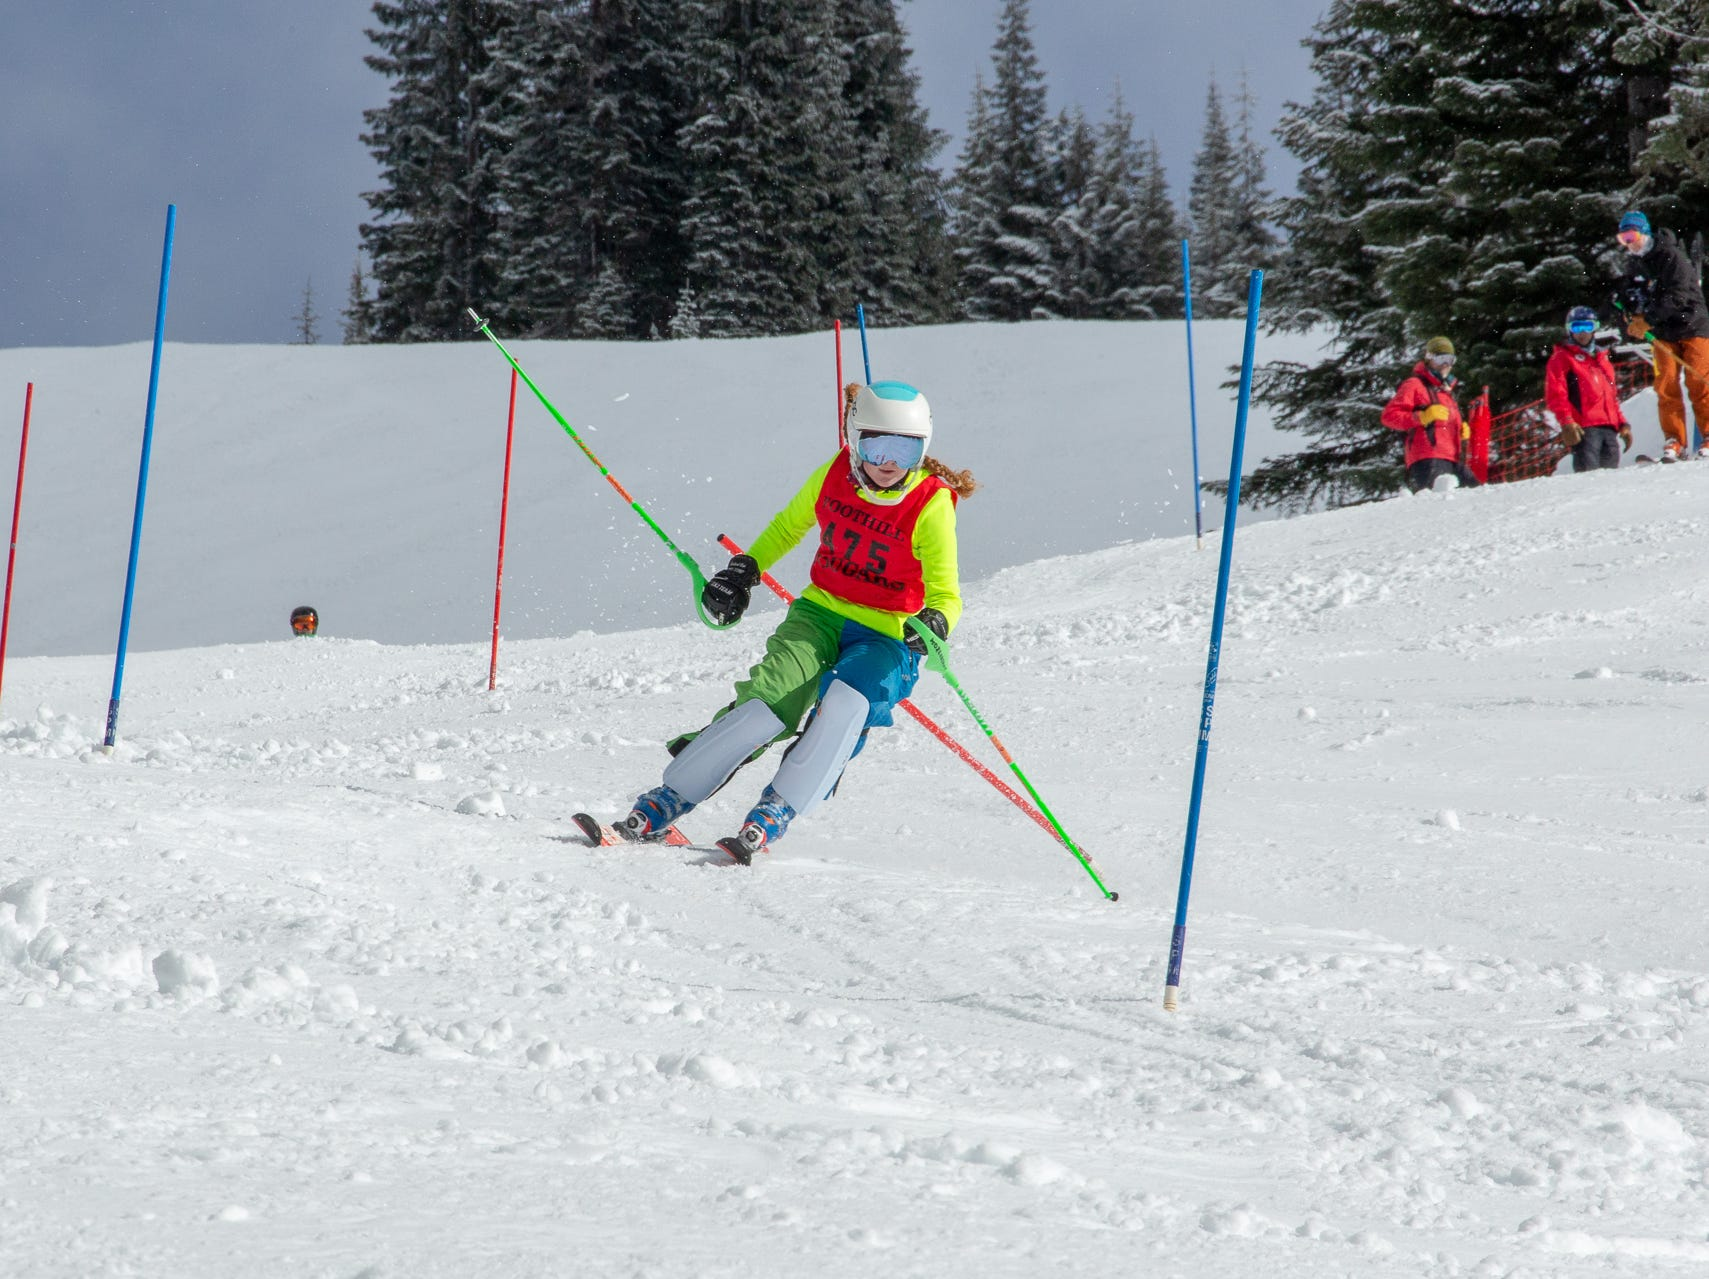 Sydnie Williams of Foothill competes in the second high school ski meet of 2019 on Monday, Jan. 21 at Mt. Shasta Ski Park.